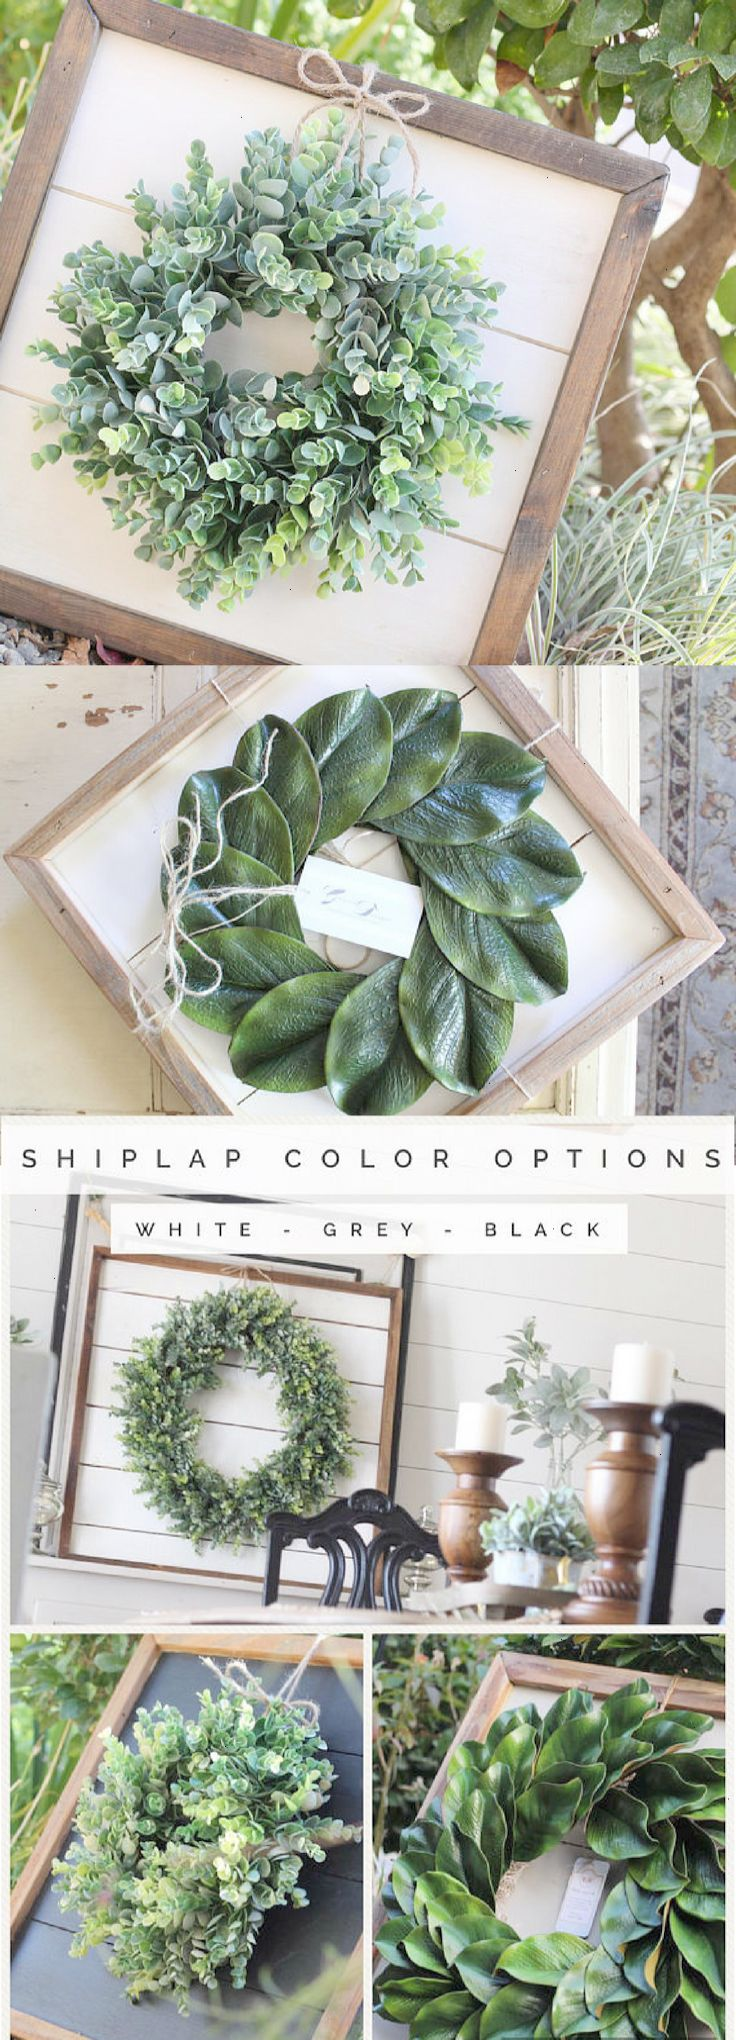 Shiplap Art & Mini Eucalyptus OR Magnolia Wreath – Small 15×15 – Reclaimed Wood – Handmade – Farmhouse – Home Decor – Custom Pieces – Spring – Living …